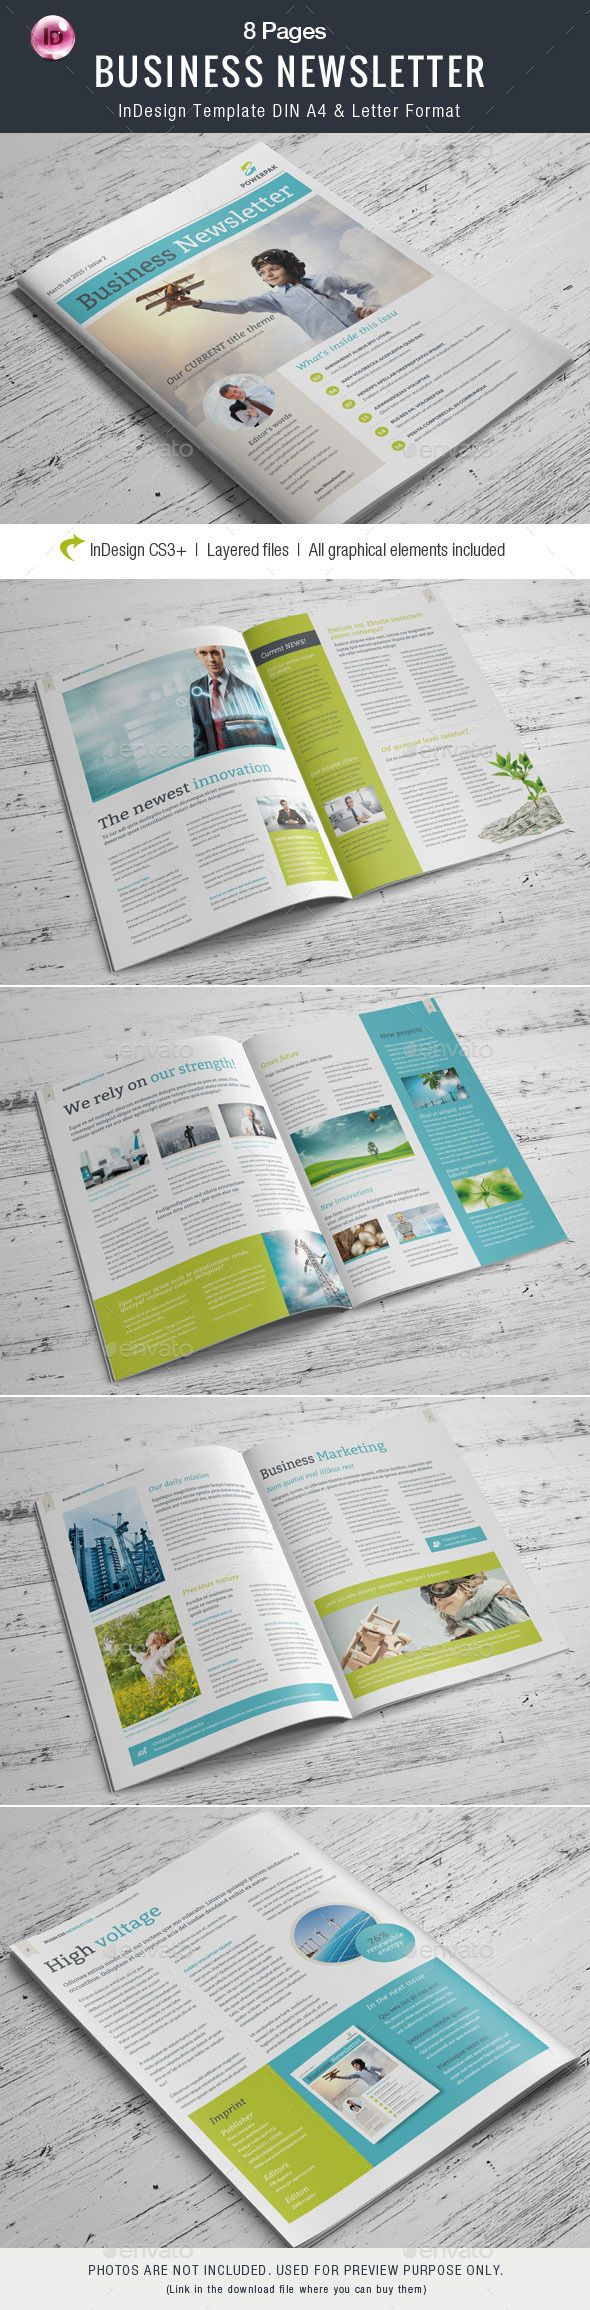 Business Newsletter (8 pages) Template #design Download: http://graphicriver.net/item/business-newsletter-8-pages/10904768?ref=ksioks